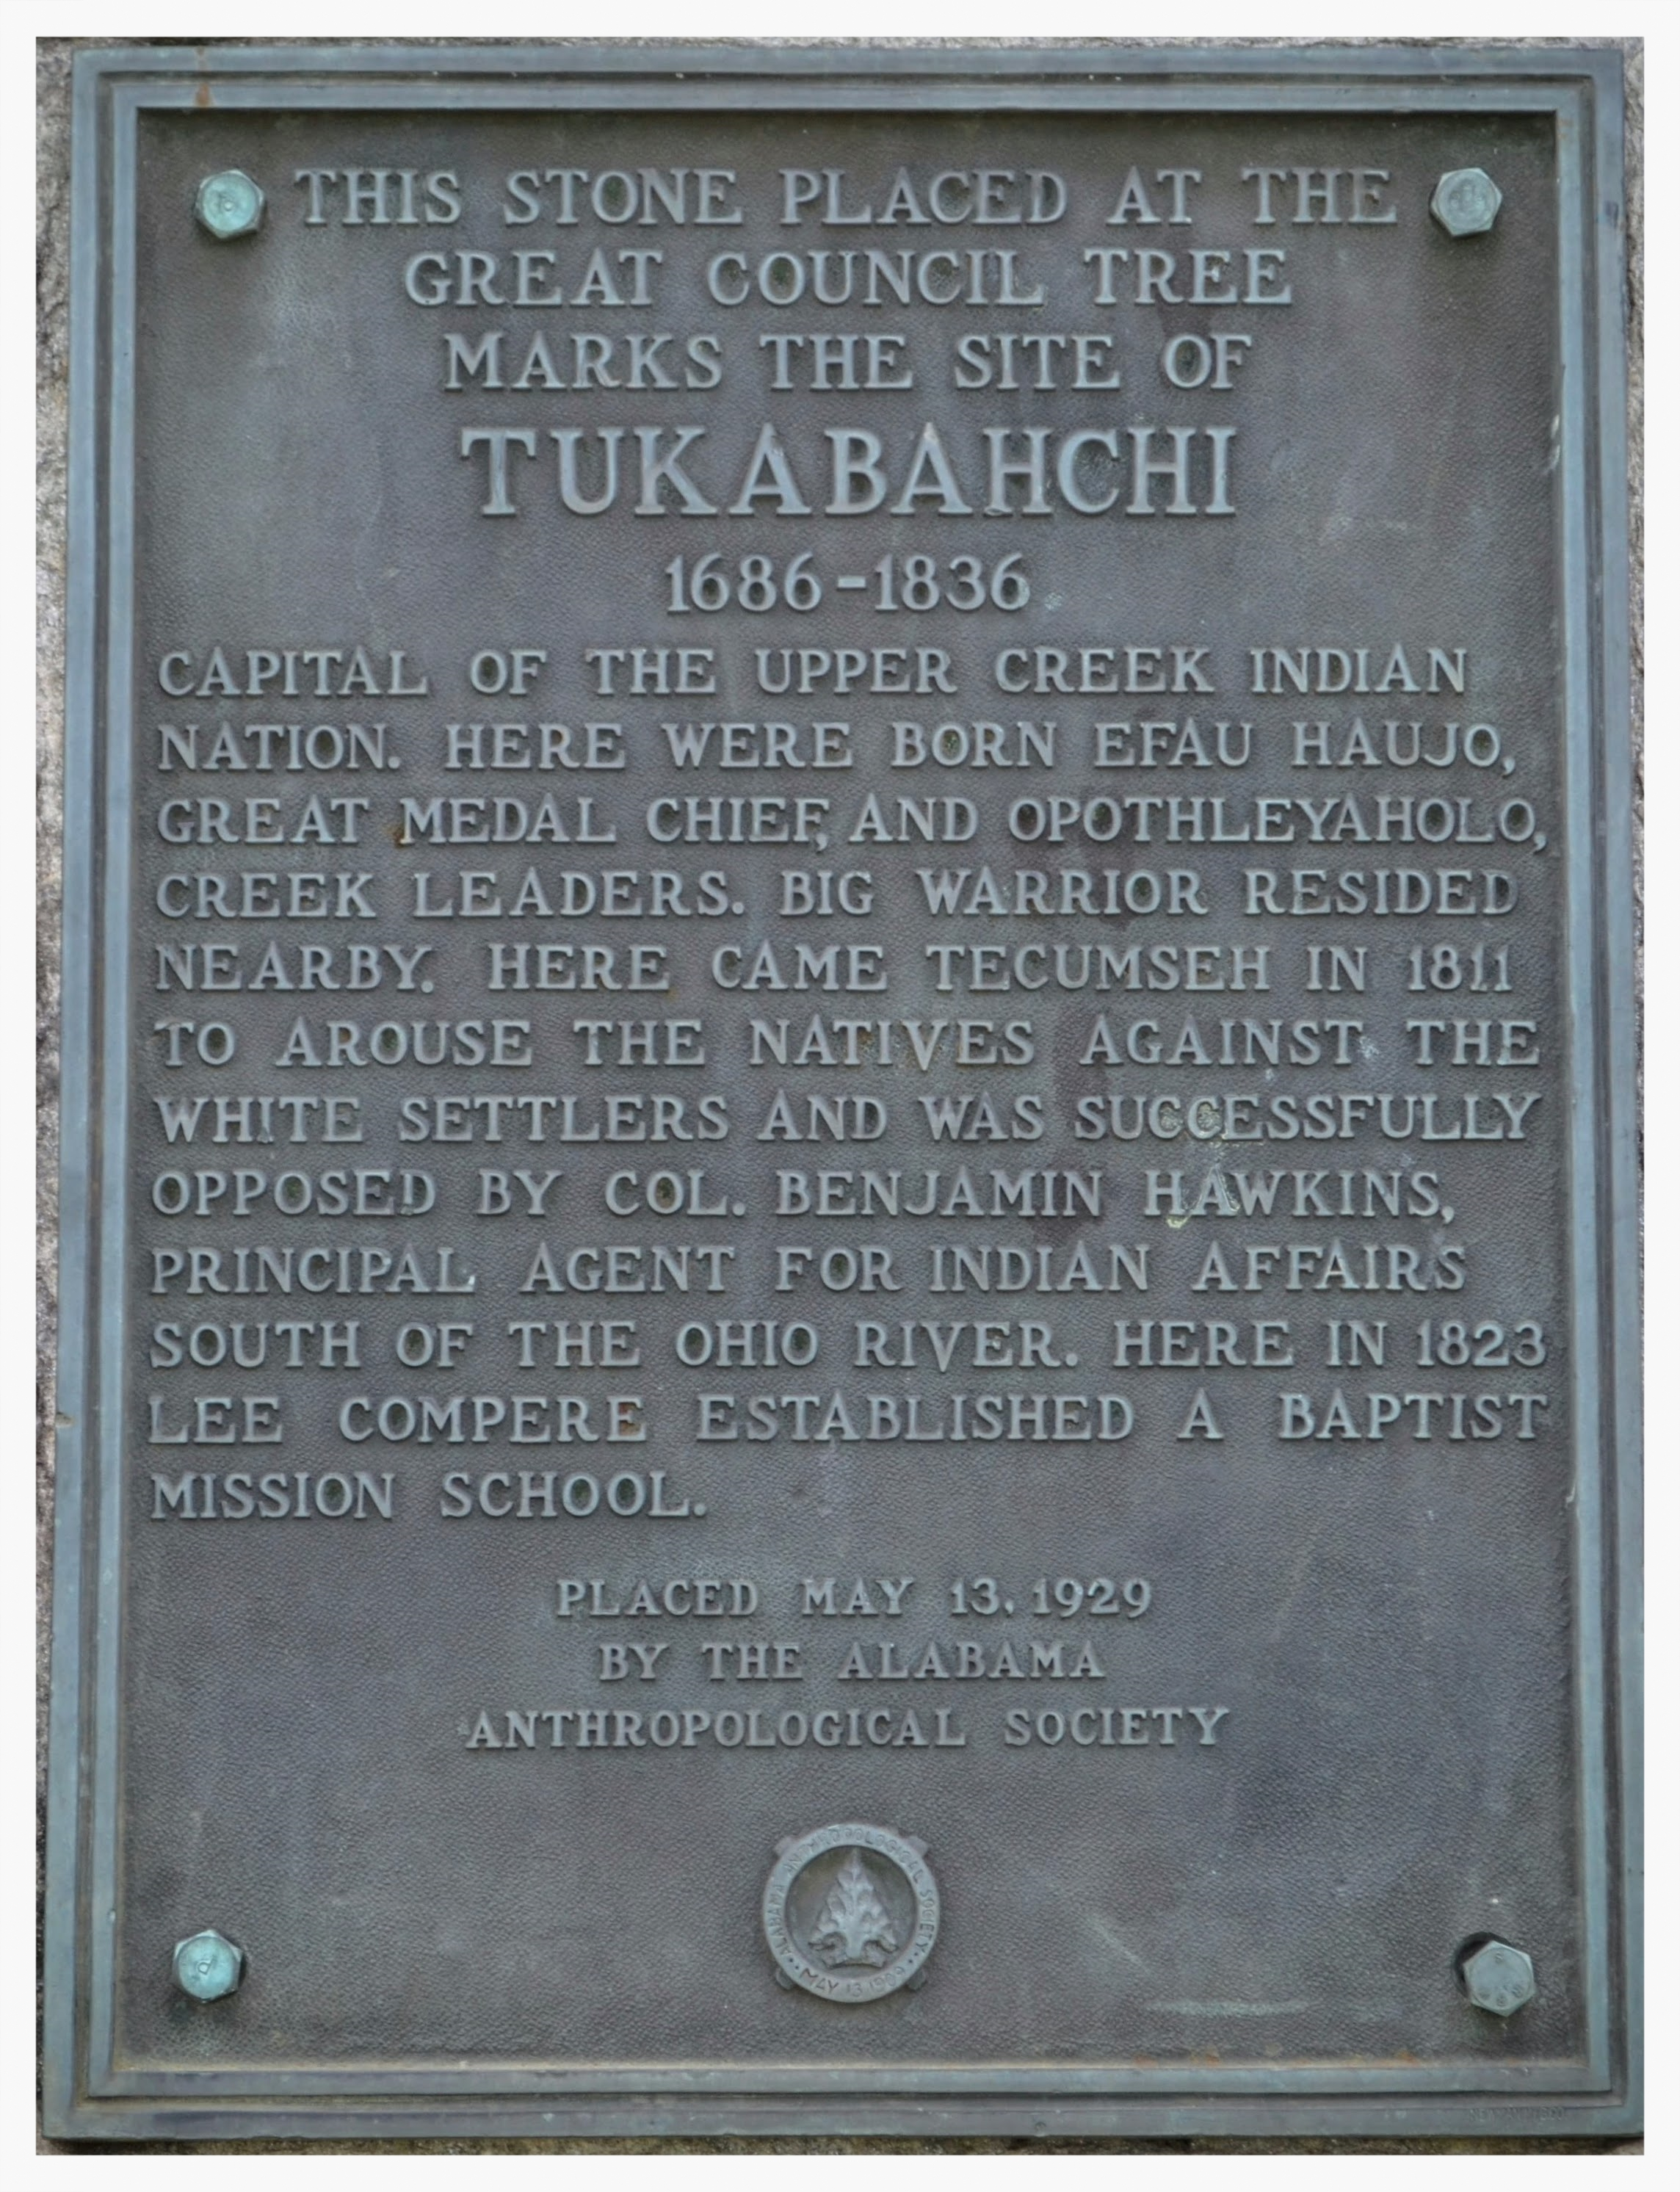 Old Tukabahchi marker, Tallassee, Elmore County, Alabama